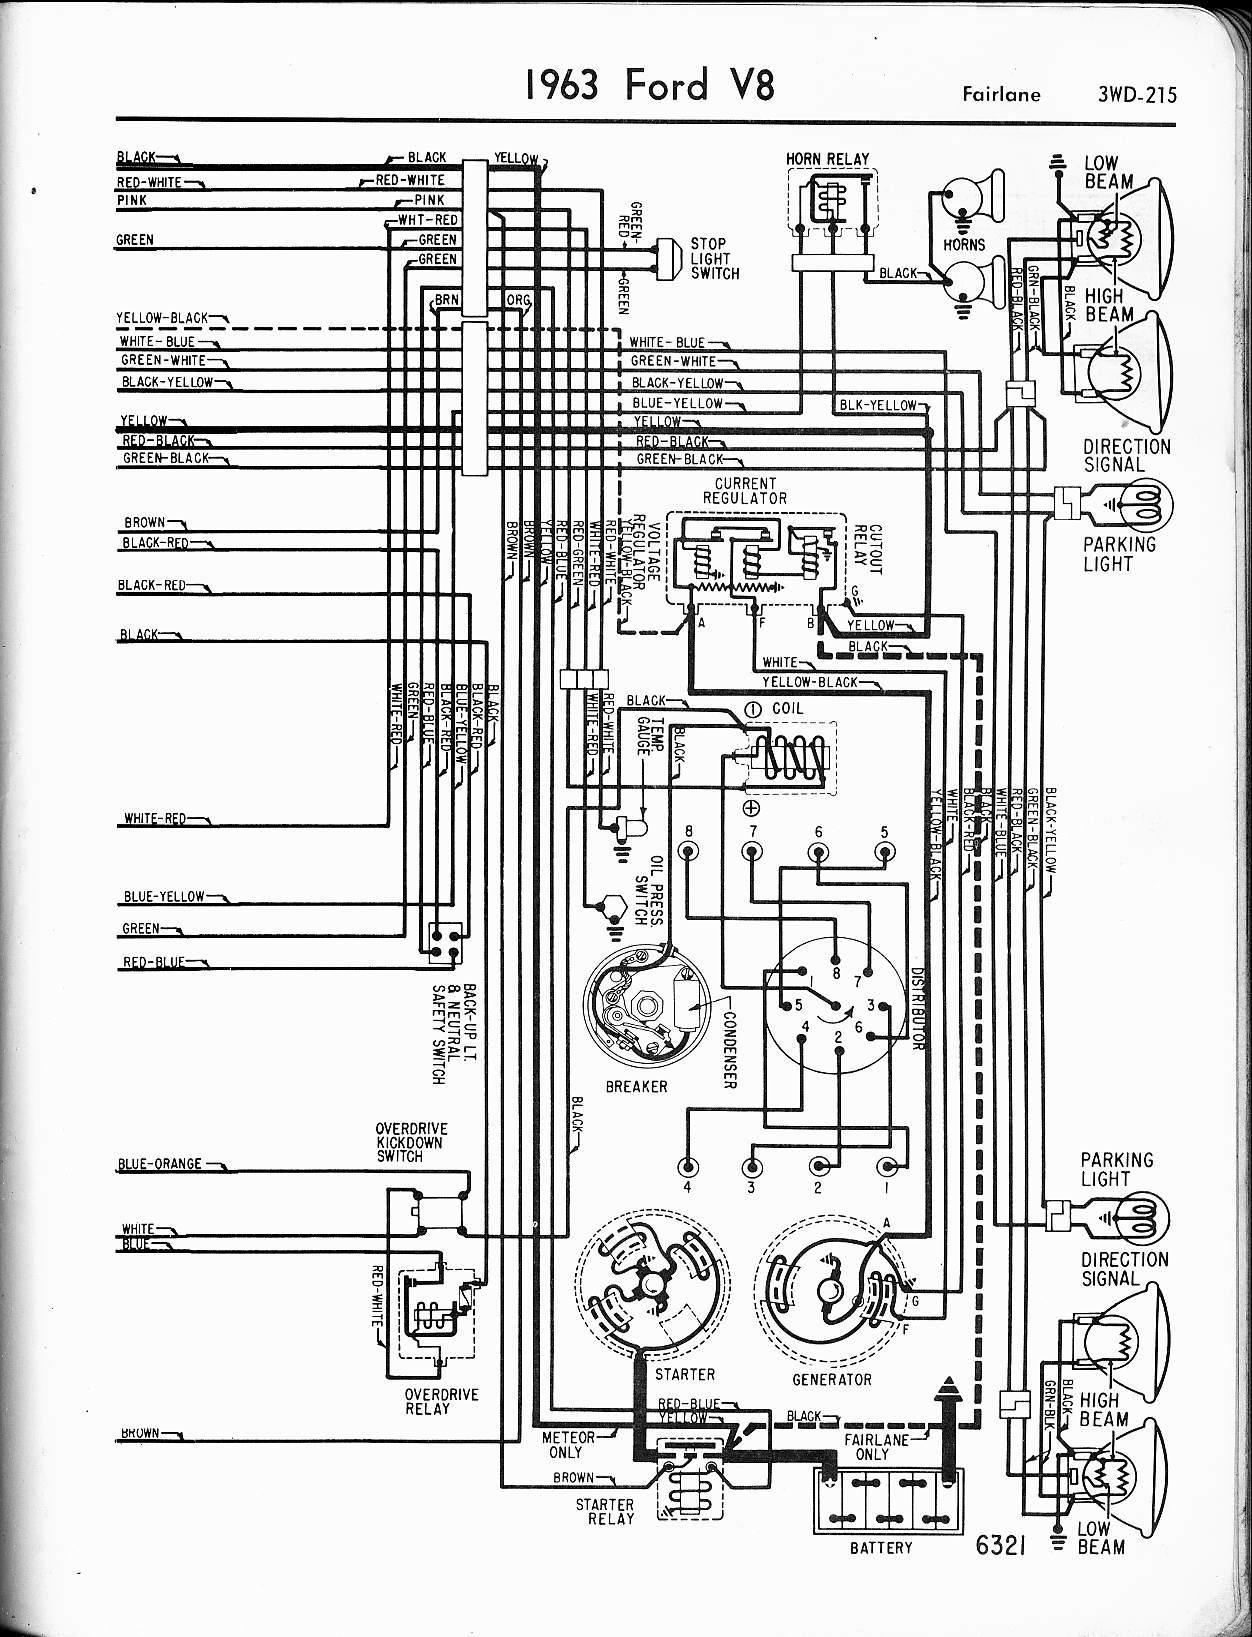 Daewoo Car Stereo Wiring Diagram